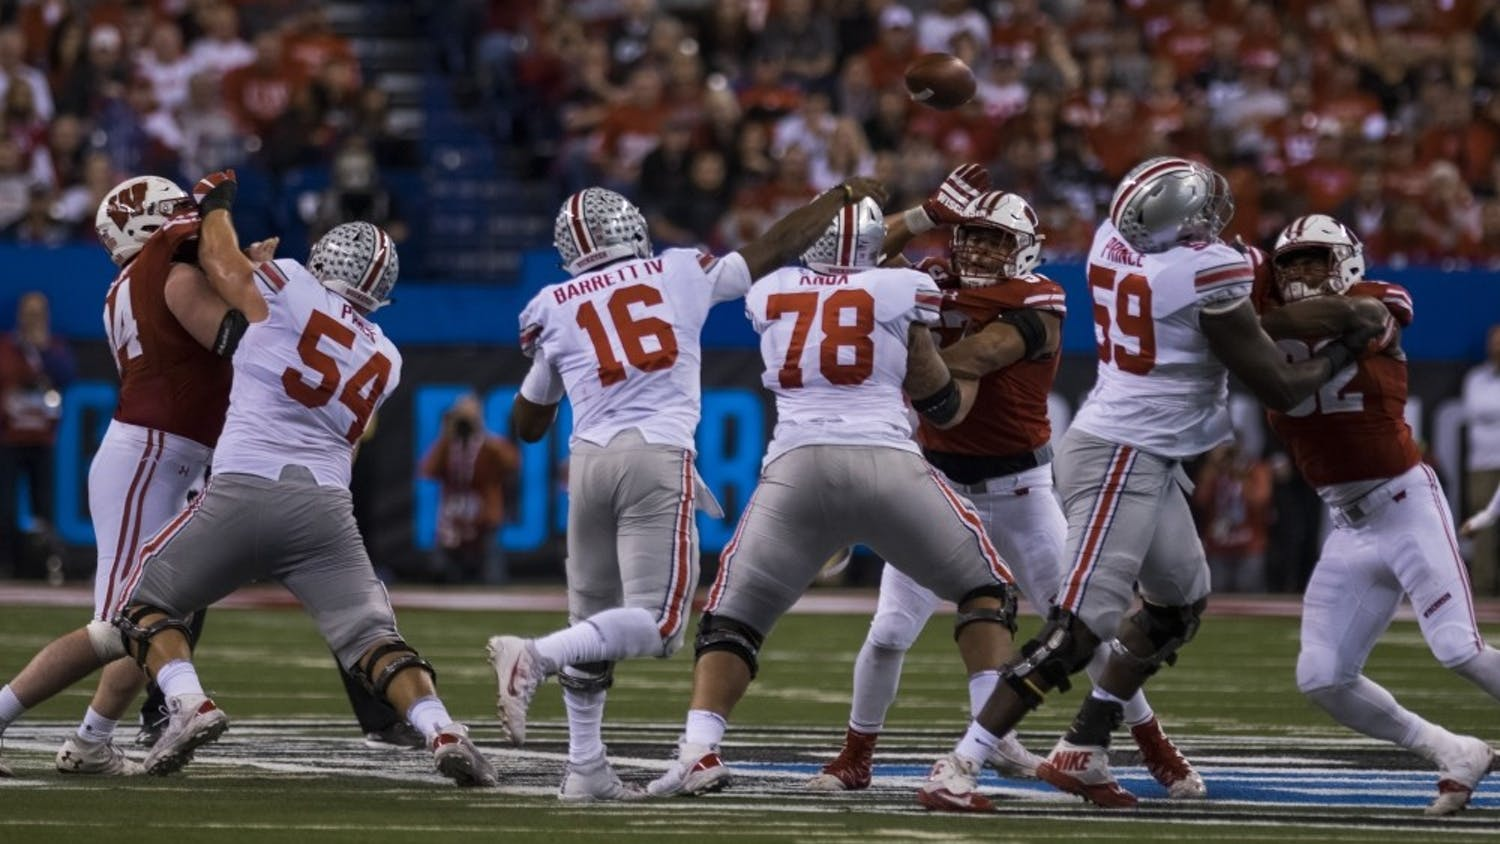 Wisconsin lost its pivotal contest at the hands of J.T. Barrett, but there will always be hope for next year.